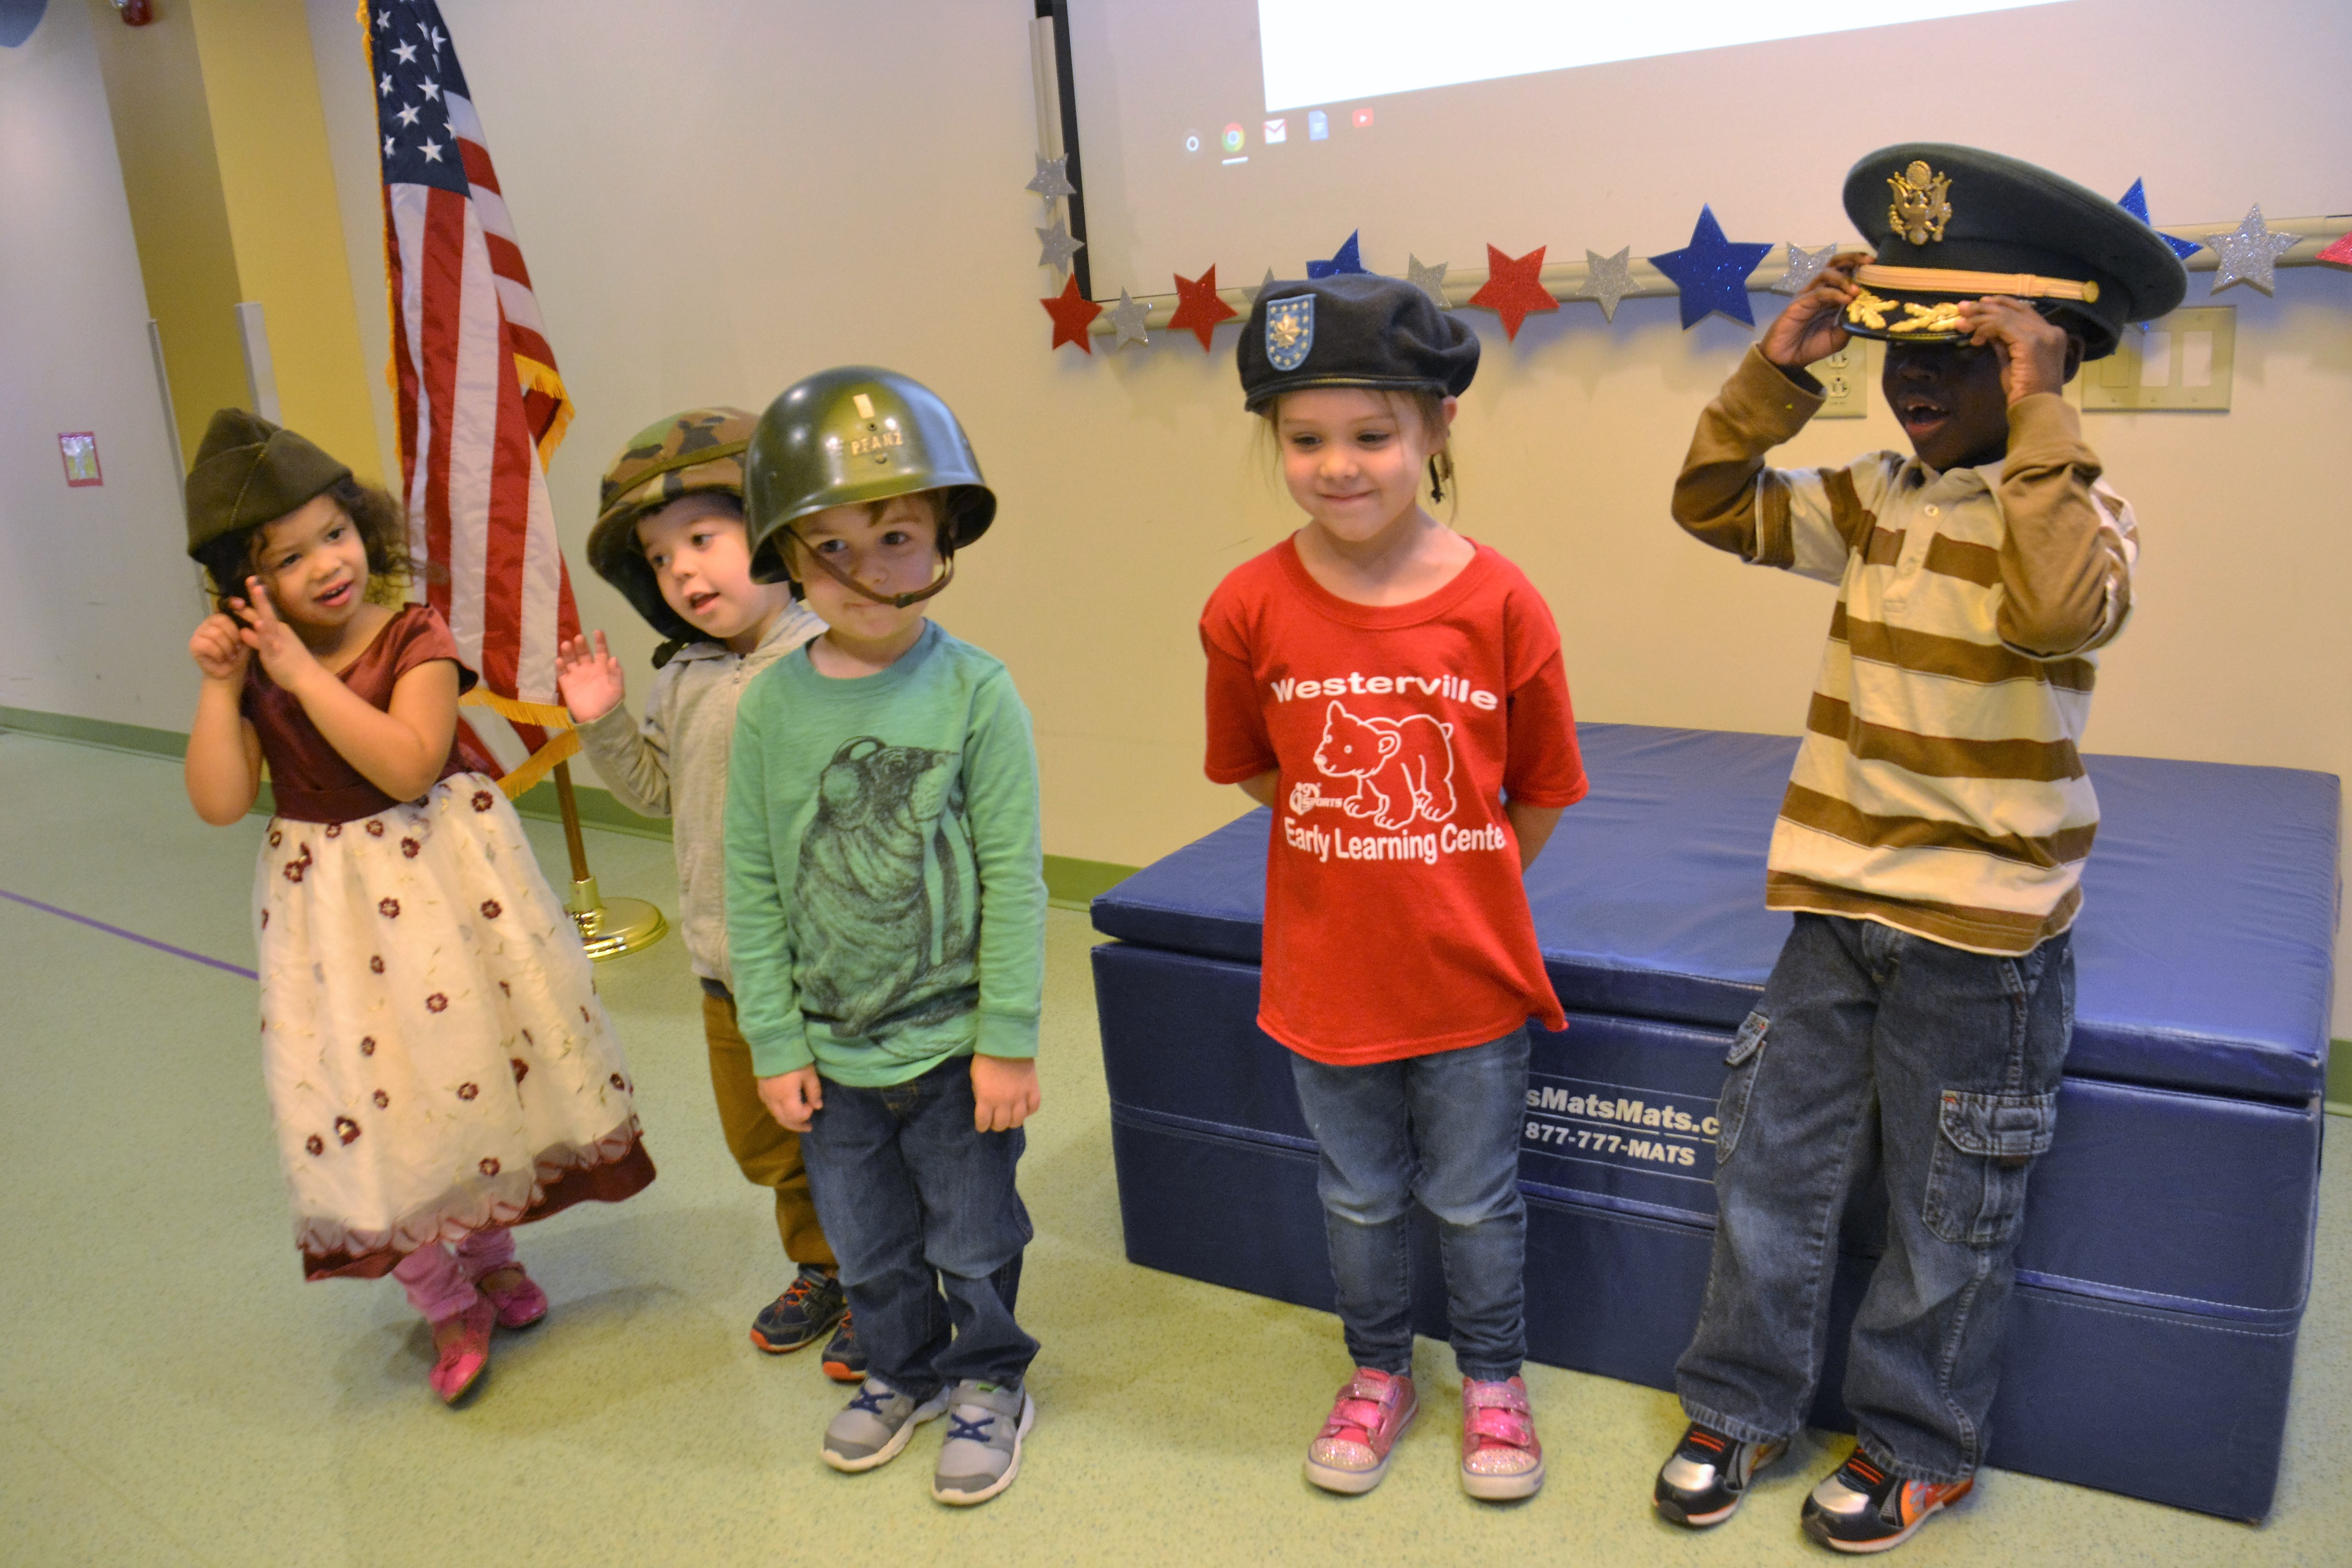 Five pre-school students try on different military headgear.